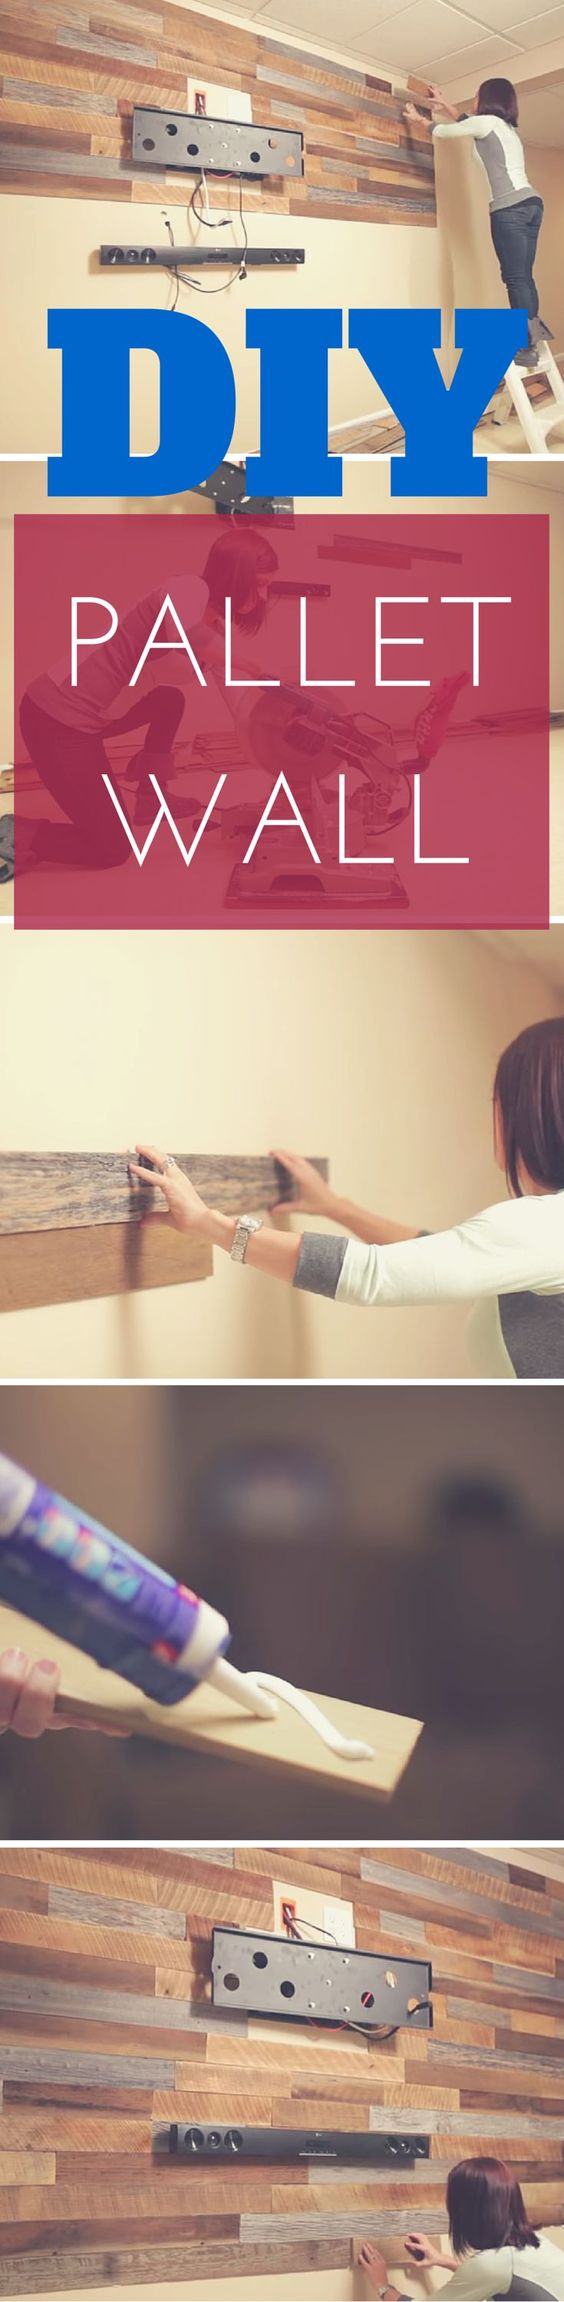 Cheap Man Cave Wall Ideas : Diy pallet pallets and walls on pinterest